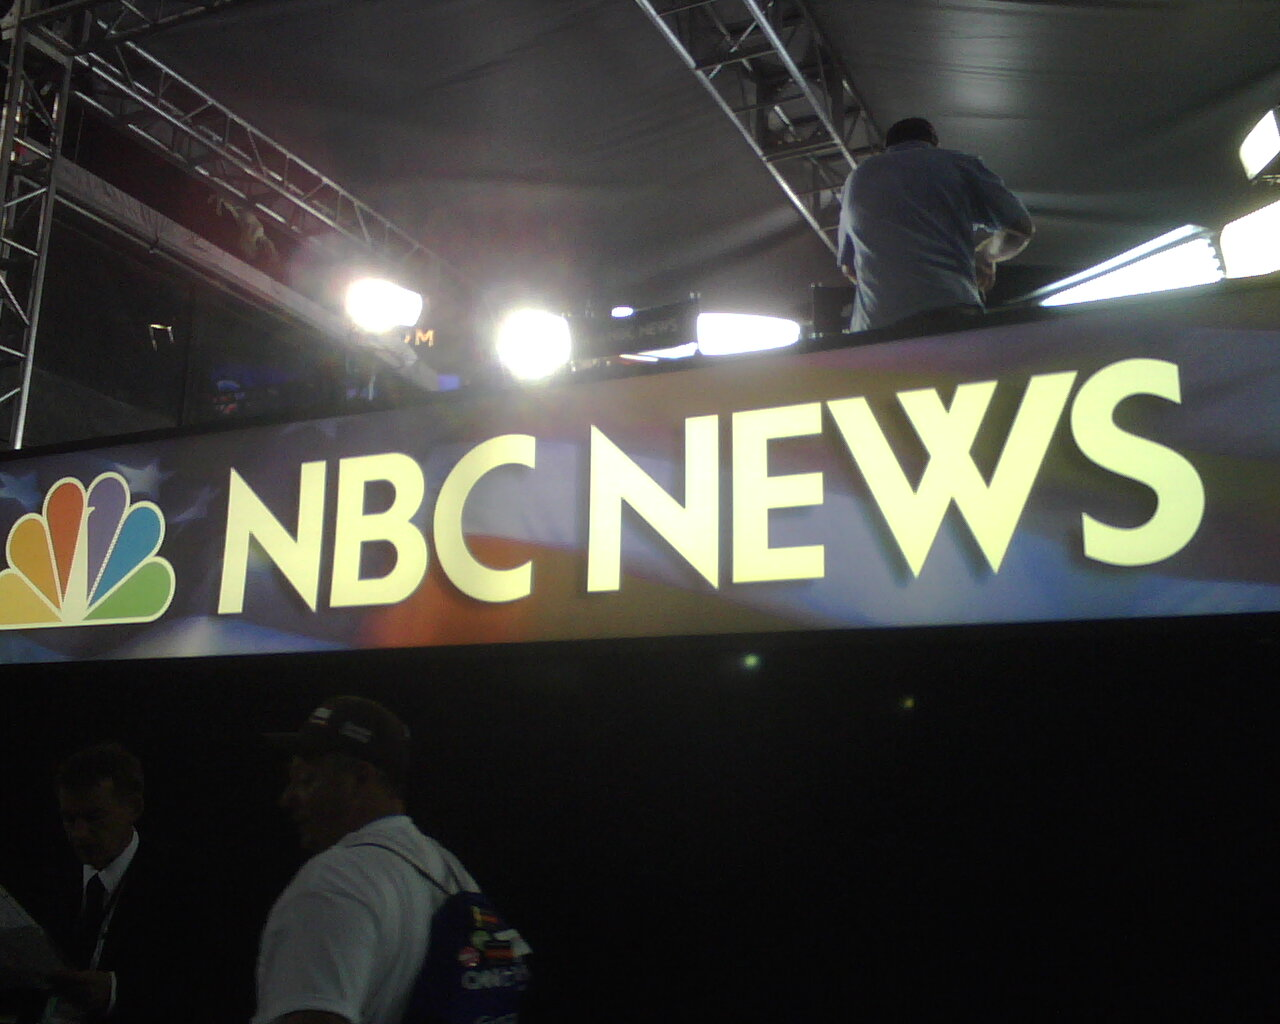 Image: Former NBC correspondent charged with asking 9-year-old girl for sexual photos